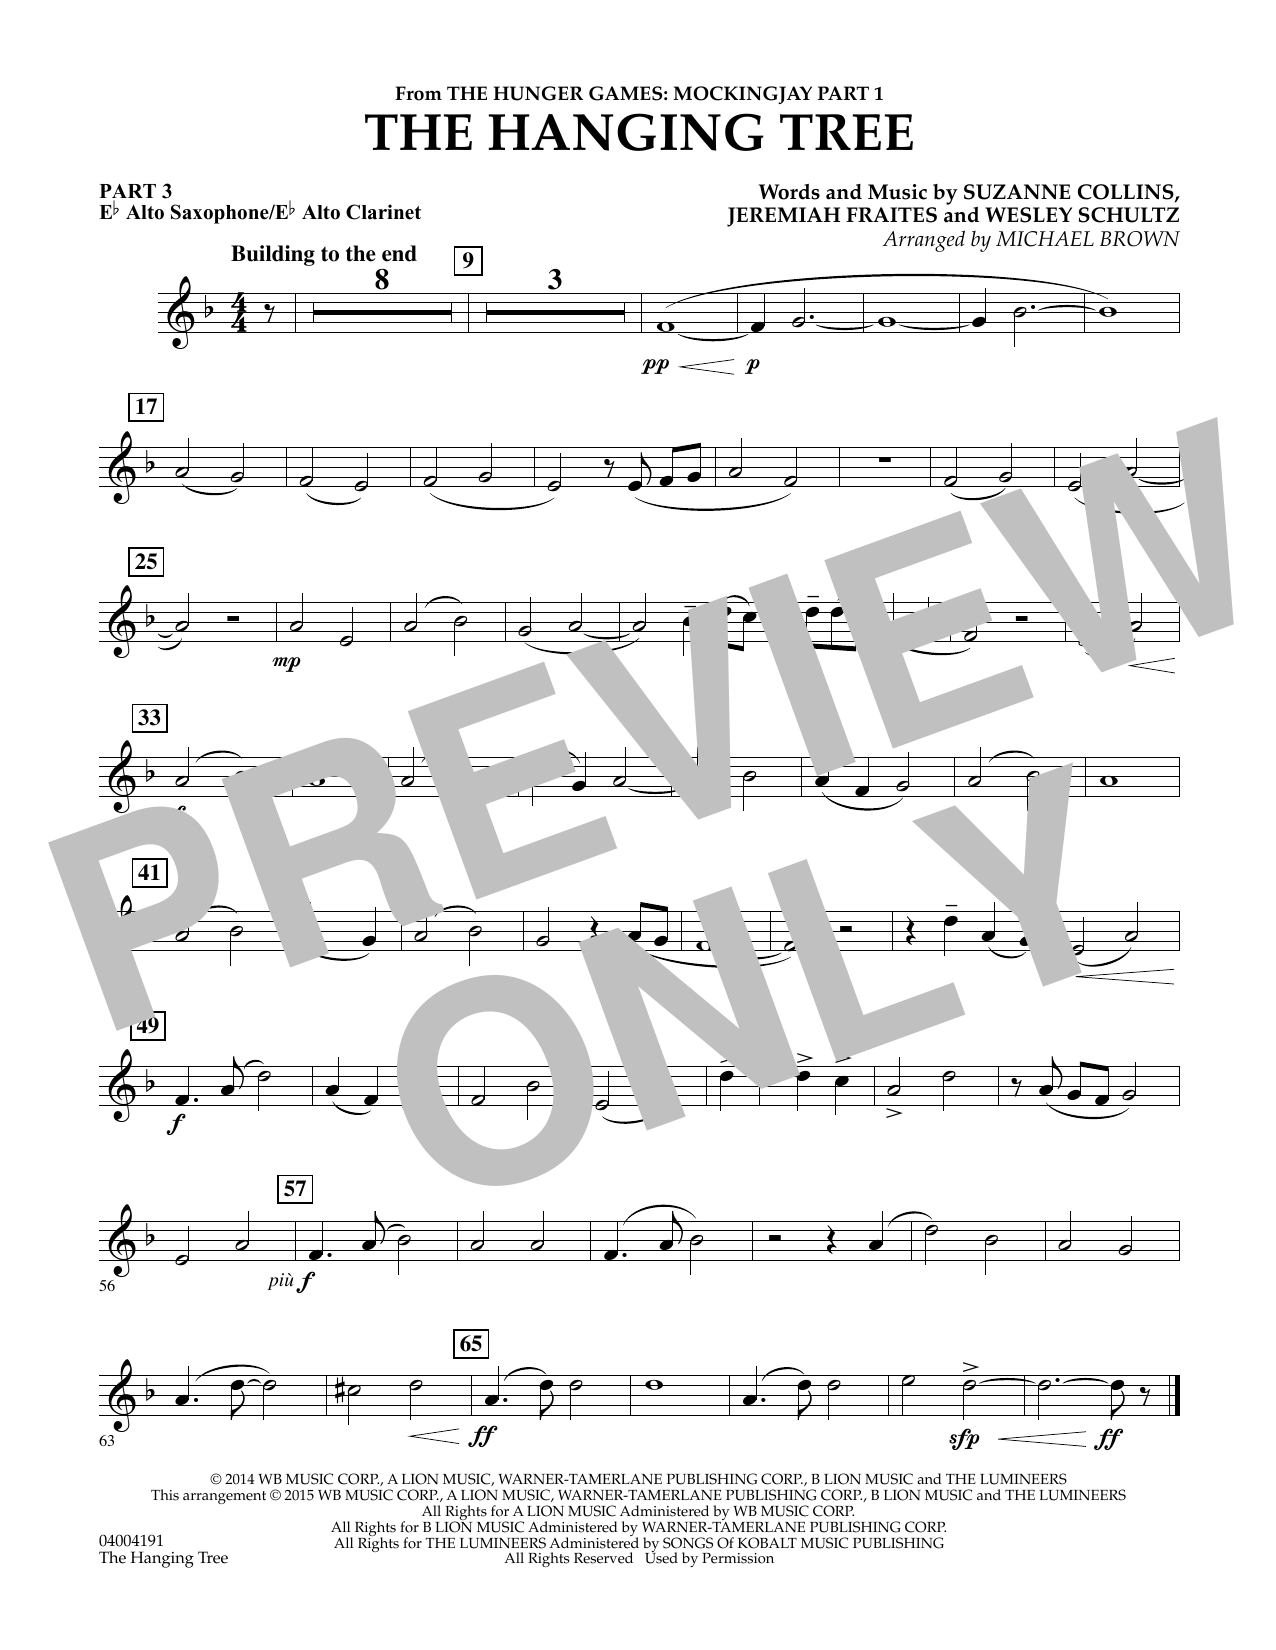 The Hanging Tree (from The Hunger Games: Mockingjay Part 1) - Pt.3 - Eb Alto Sax/Alto Clar. (Flex-Band)